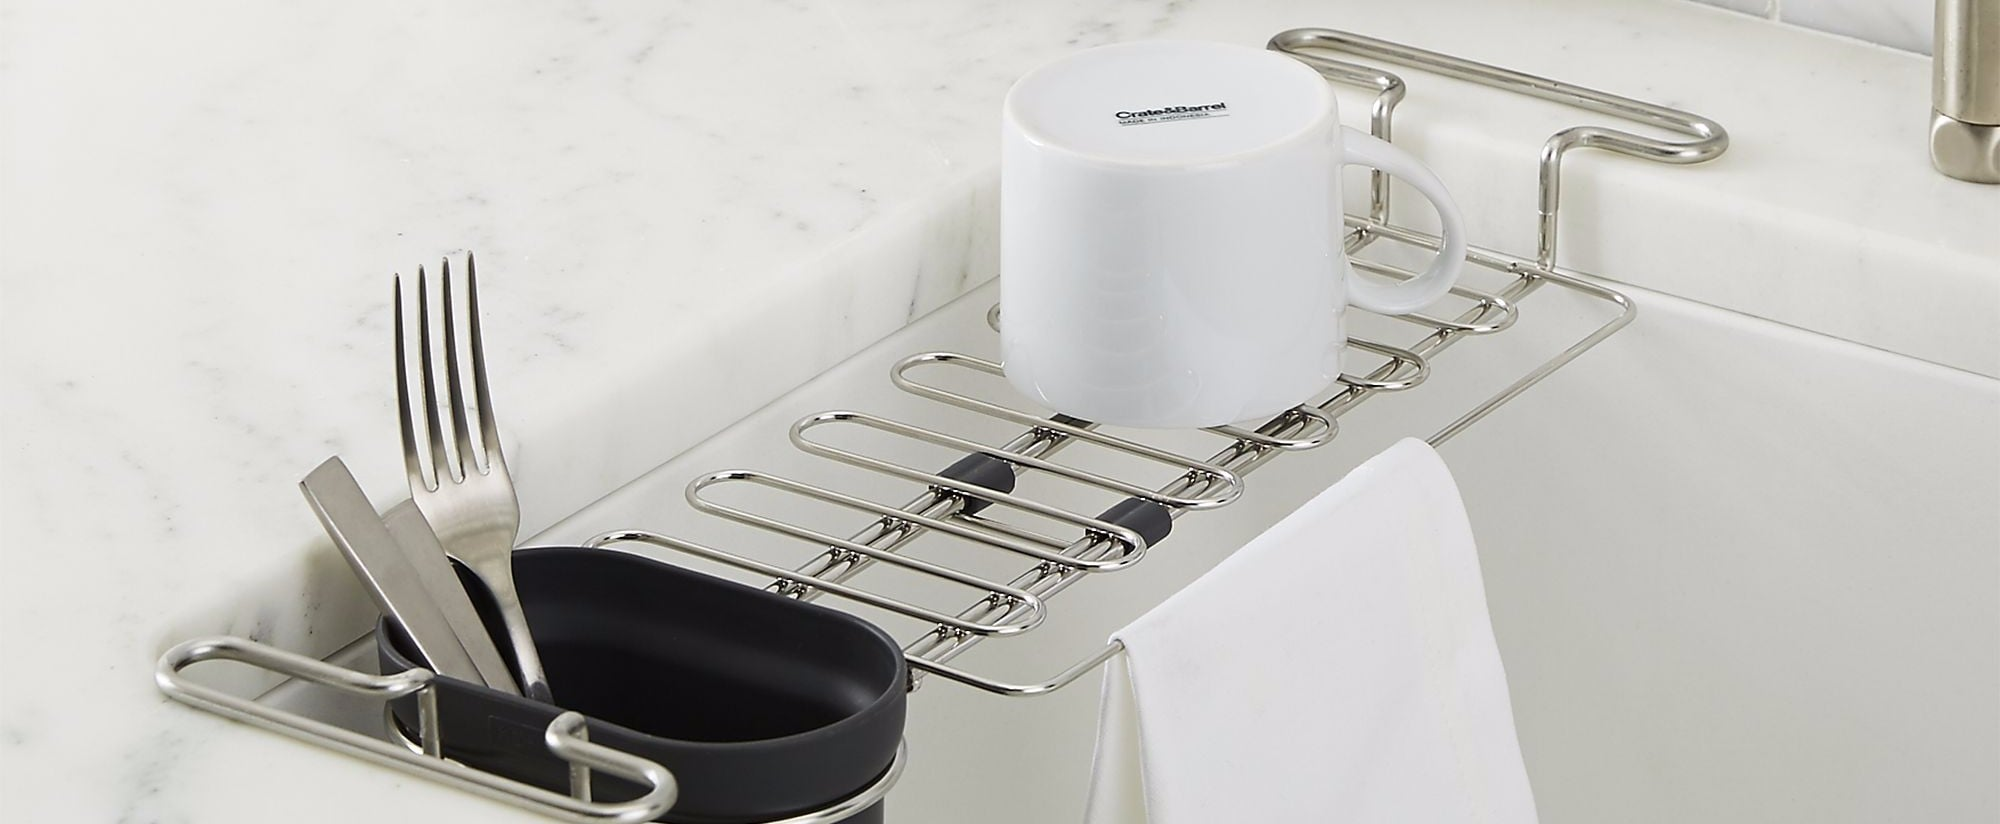 15 Genius Kitchen Sink Organization Accessories You Need ASAP